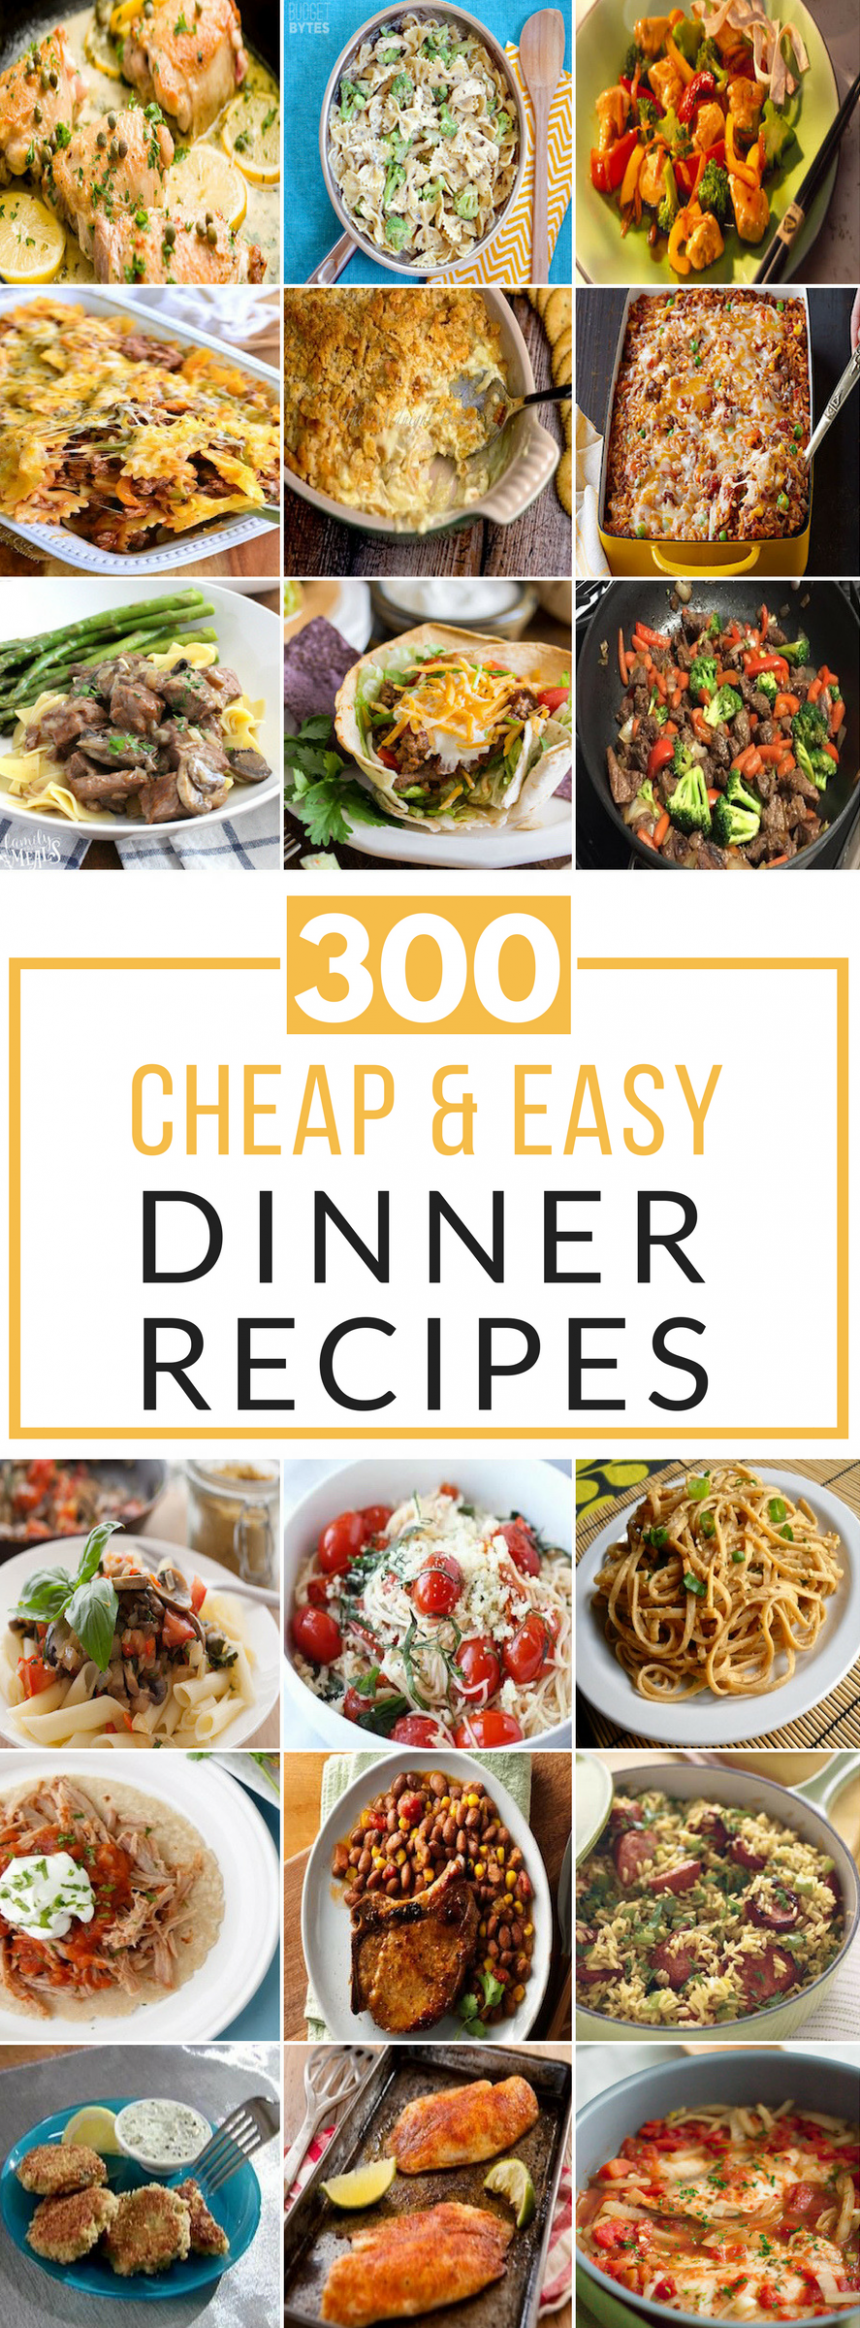 300 Cheap and Easy Dinner Recipes - Prudent Penny Pincher